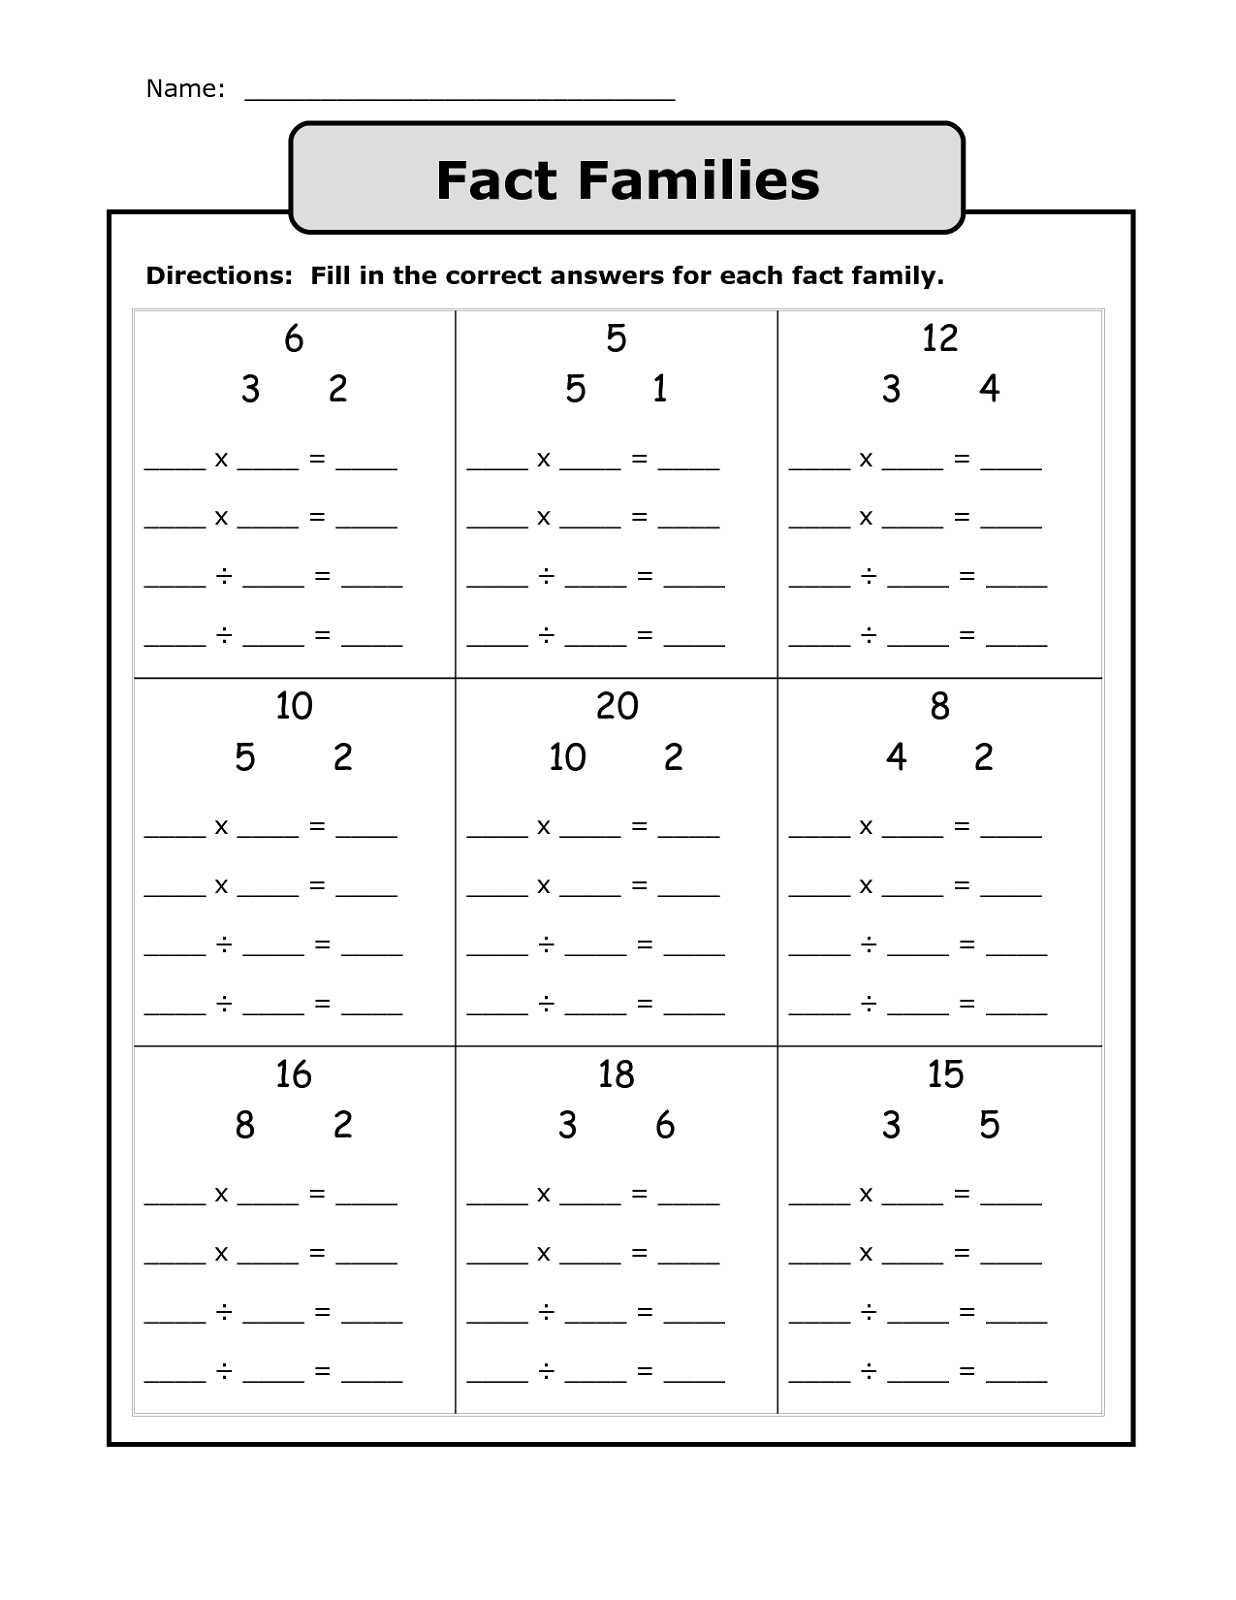 fact-family-worksheet-printable